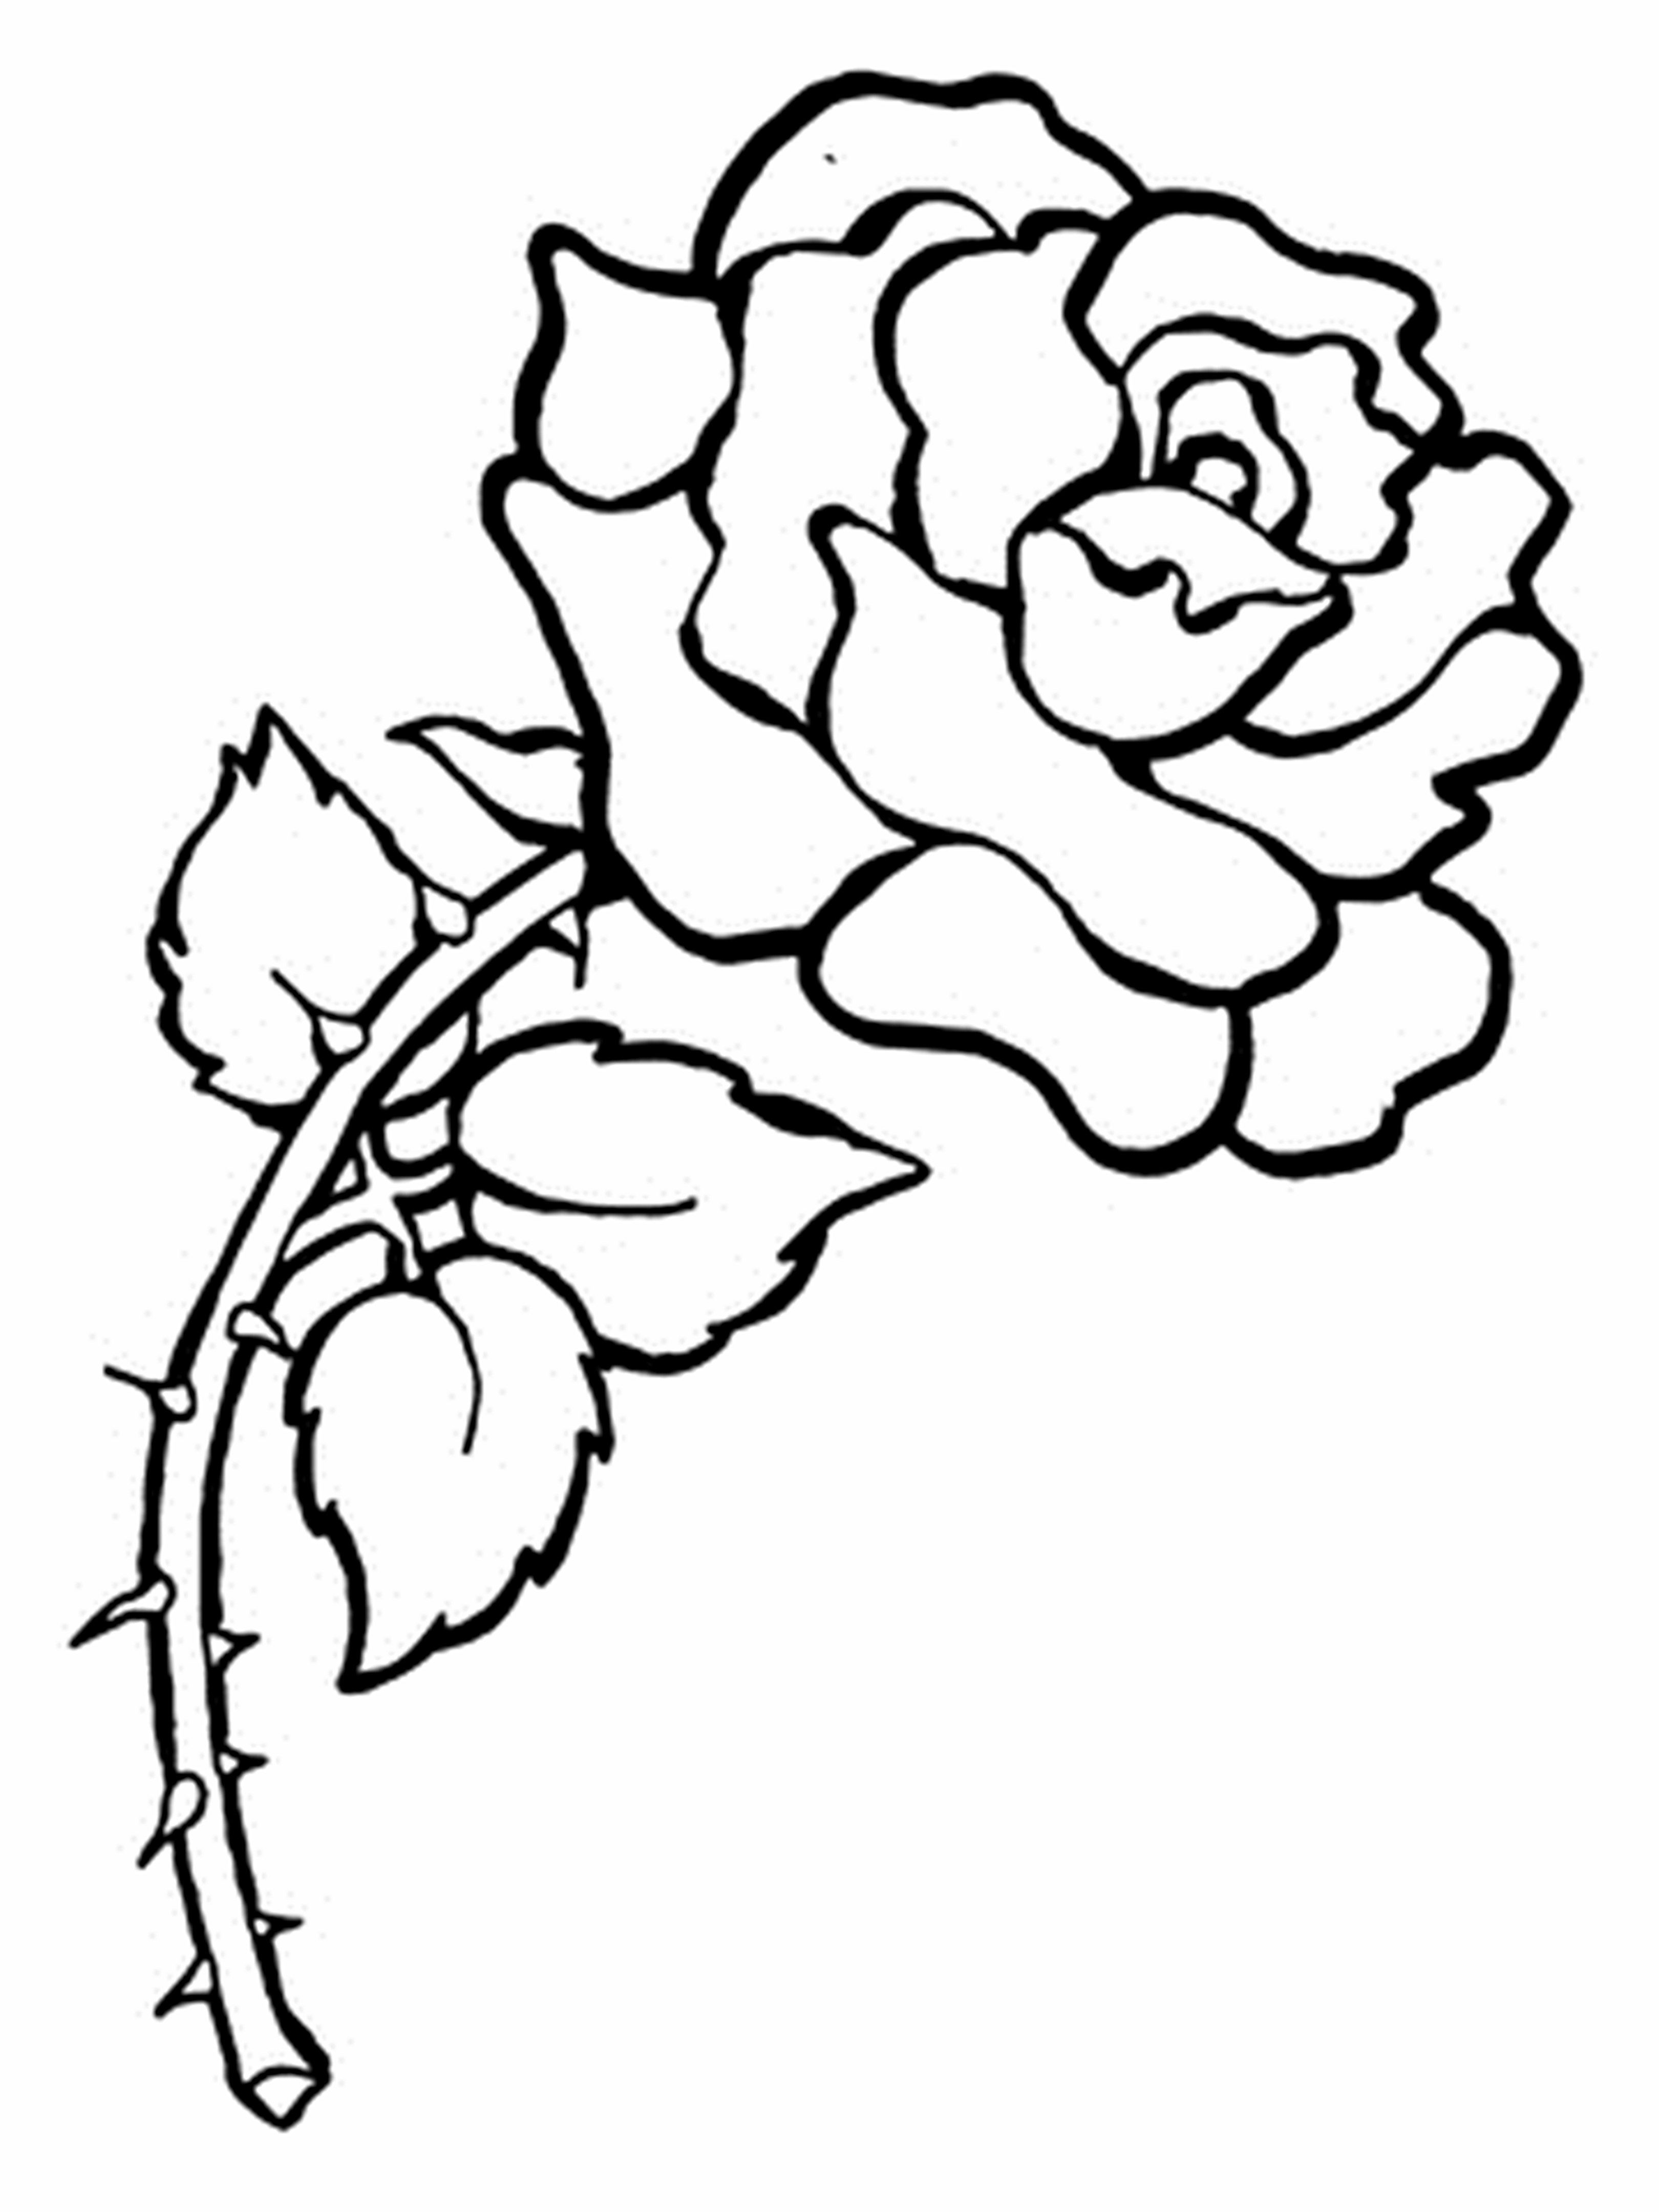 coloring sheet rose flower coloring pages free printable flower coloring pages for kids best pages rose sheet coloring coloring flower